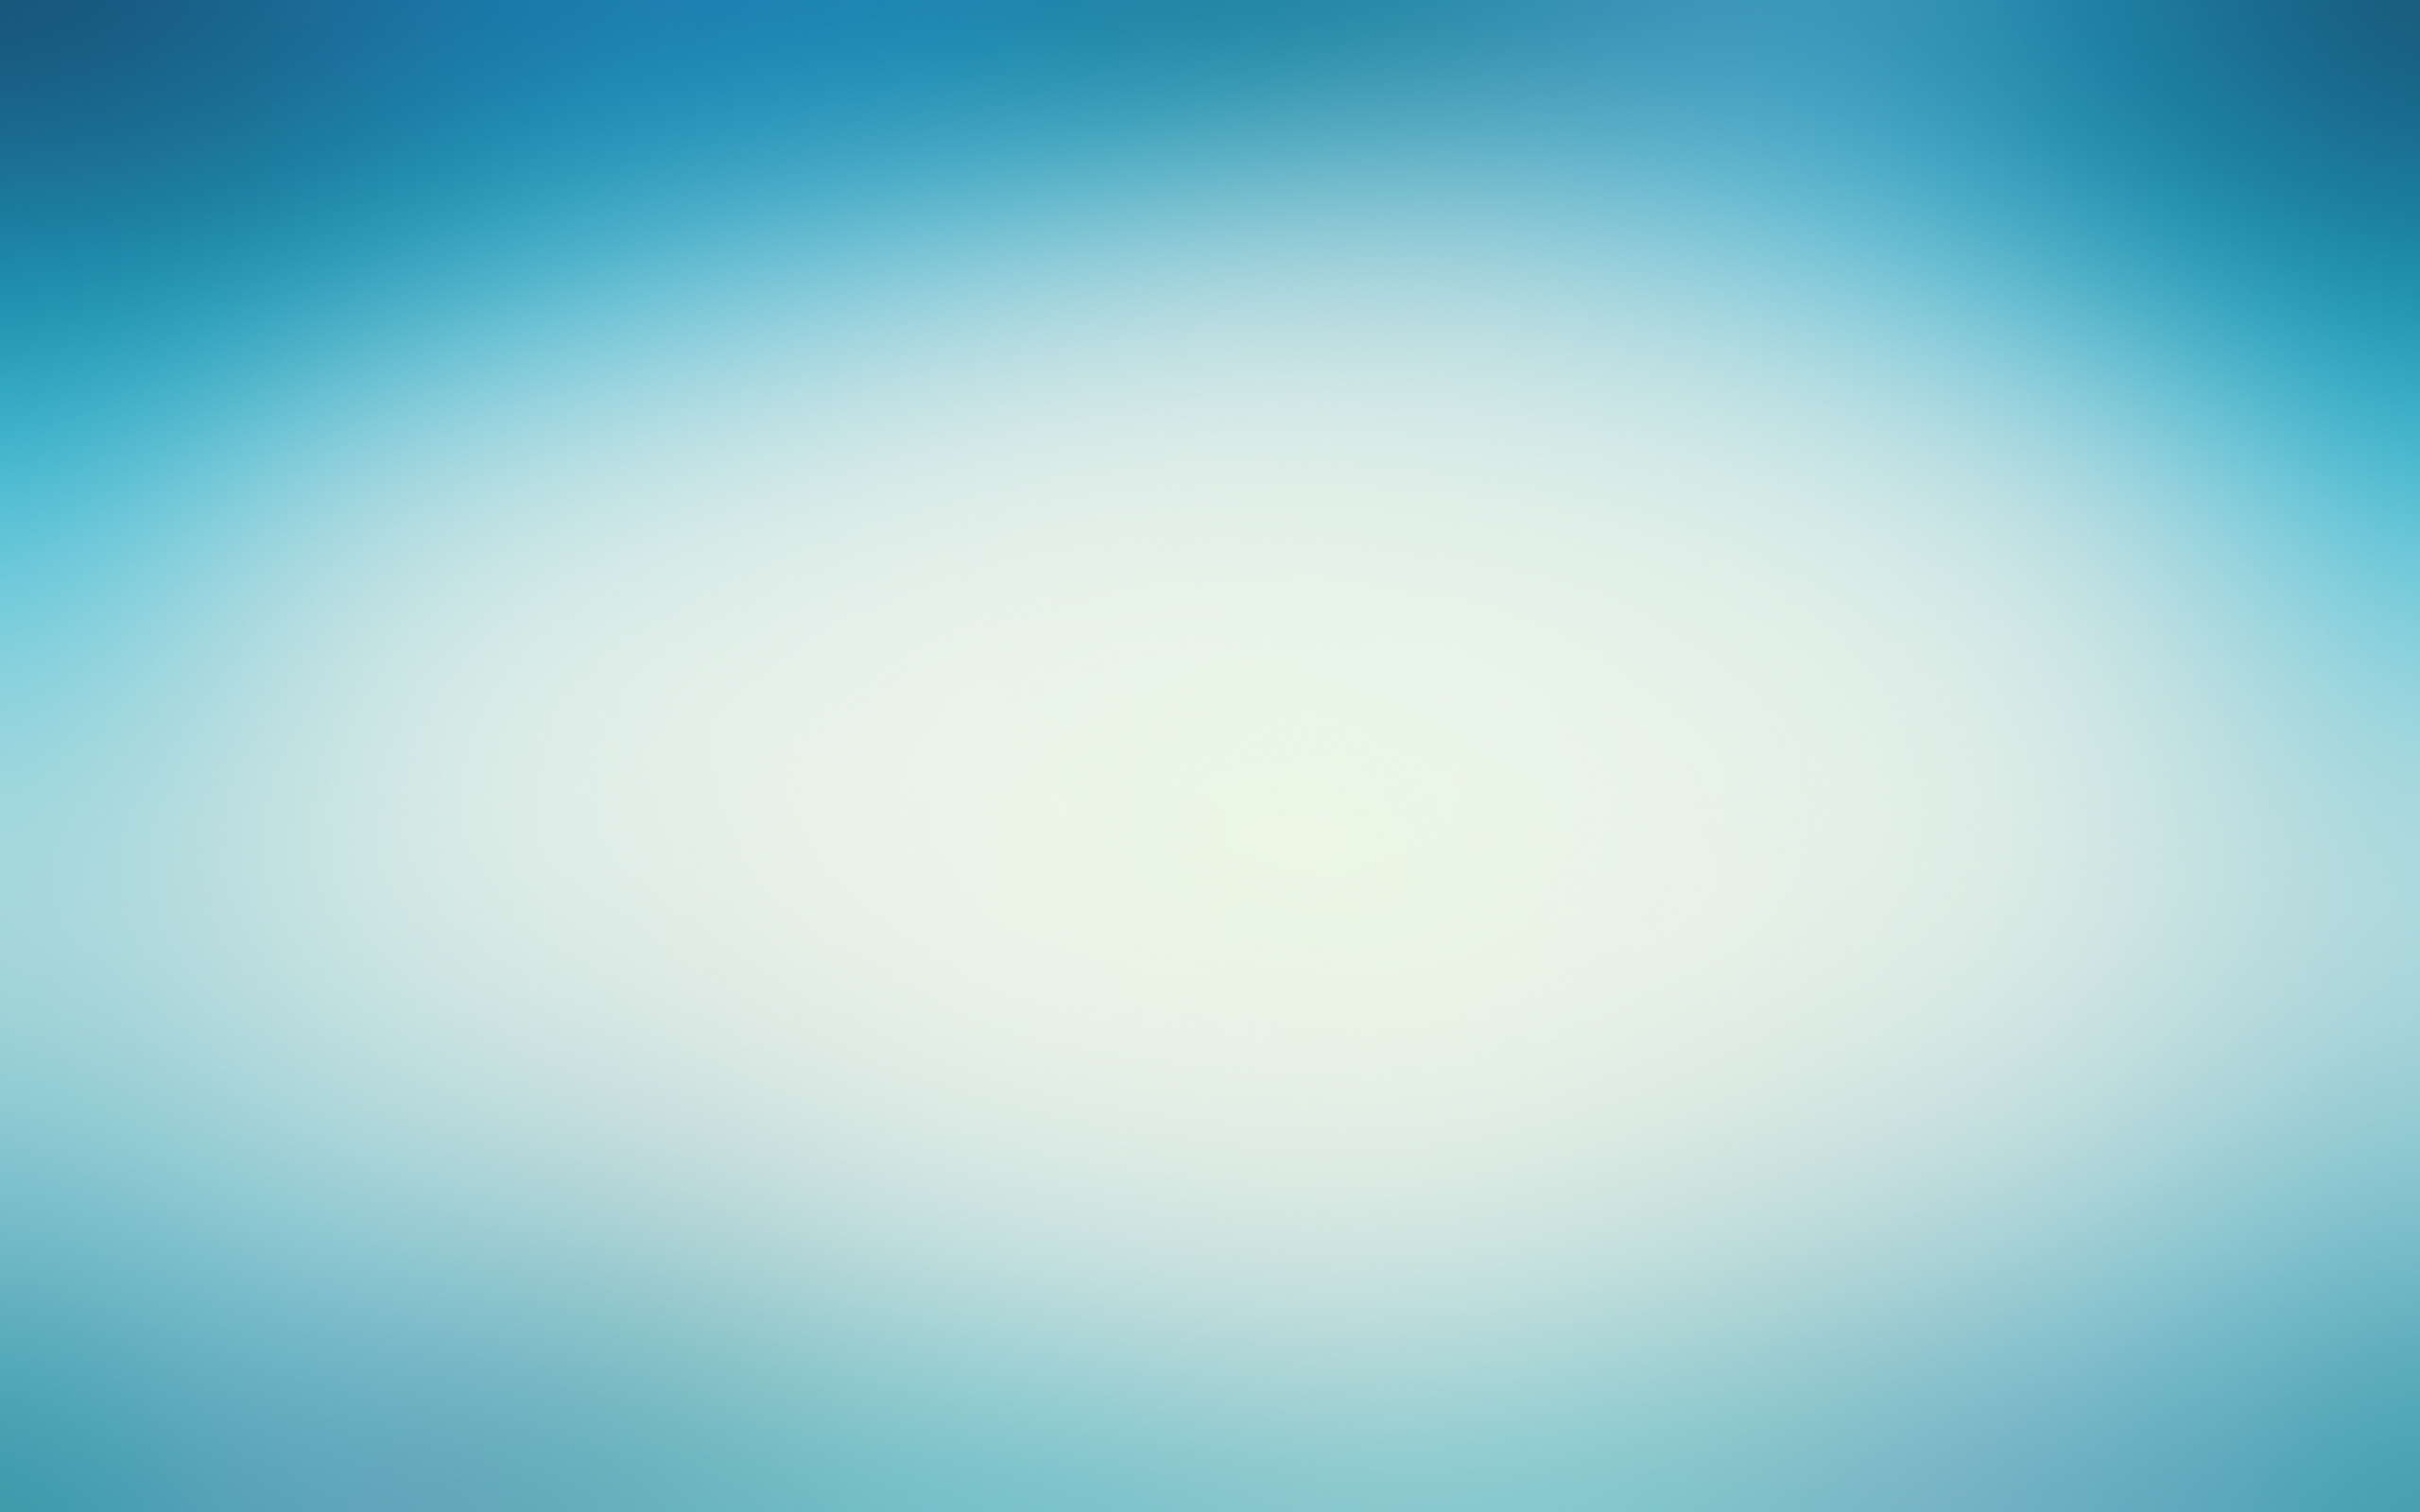 Background with Blue Frame 92.2 Kb